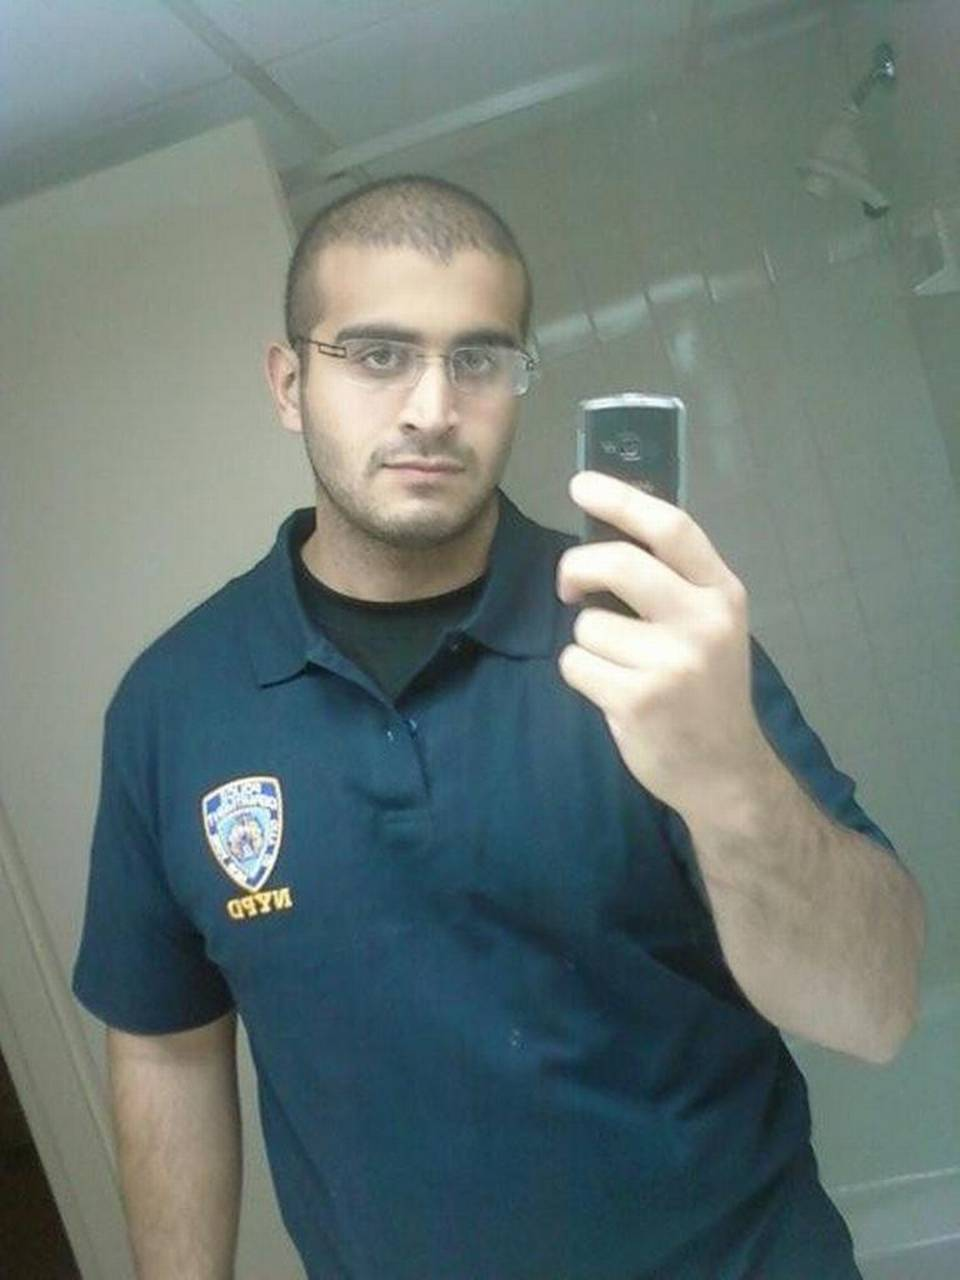 Omar Mateen via My Space